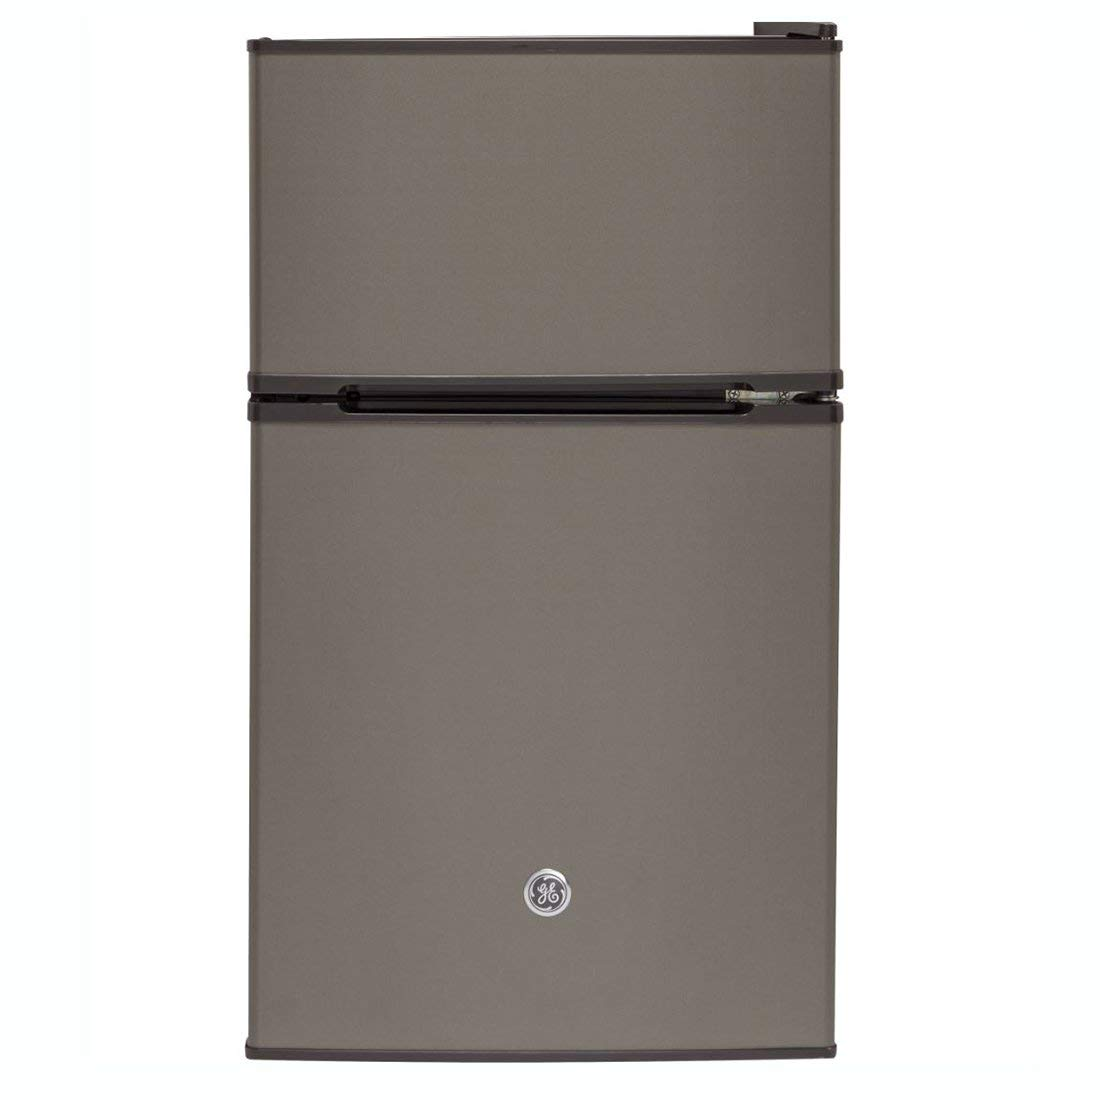 GE Appliances 3.1 Cubic Foot Freestanding Double Door Compact Refrigerator, Slate